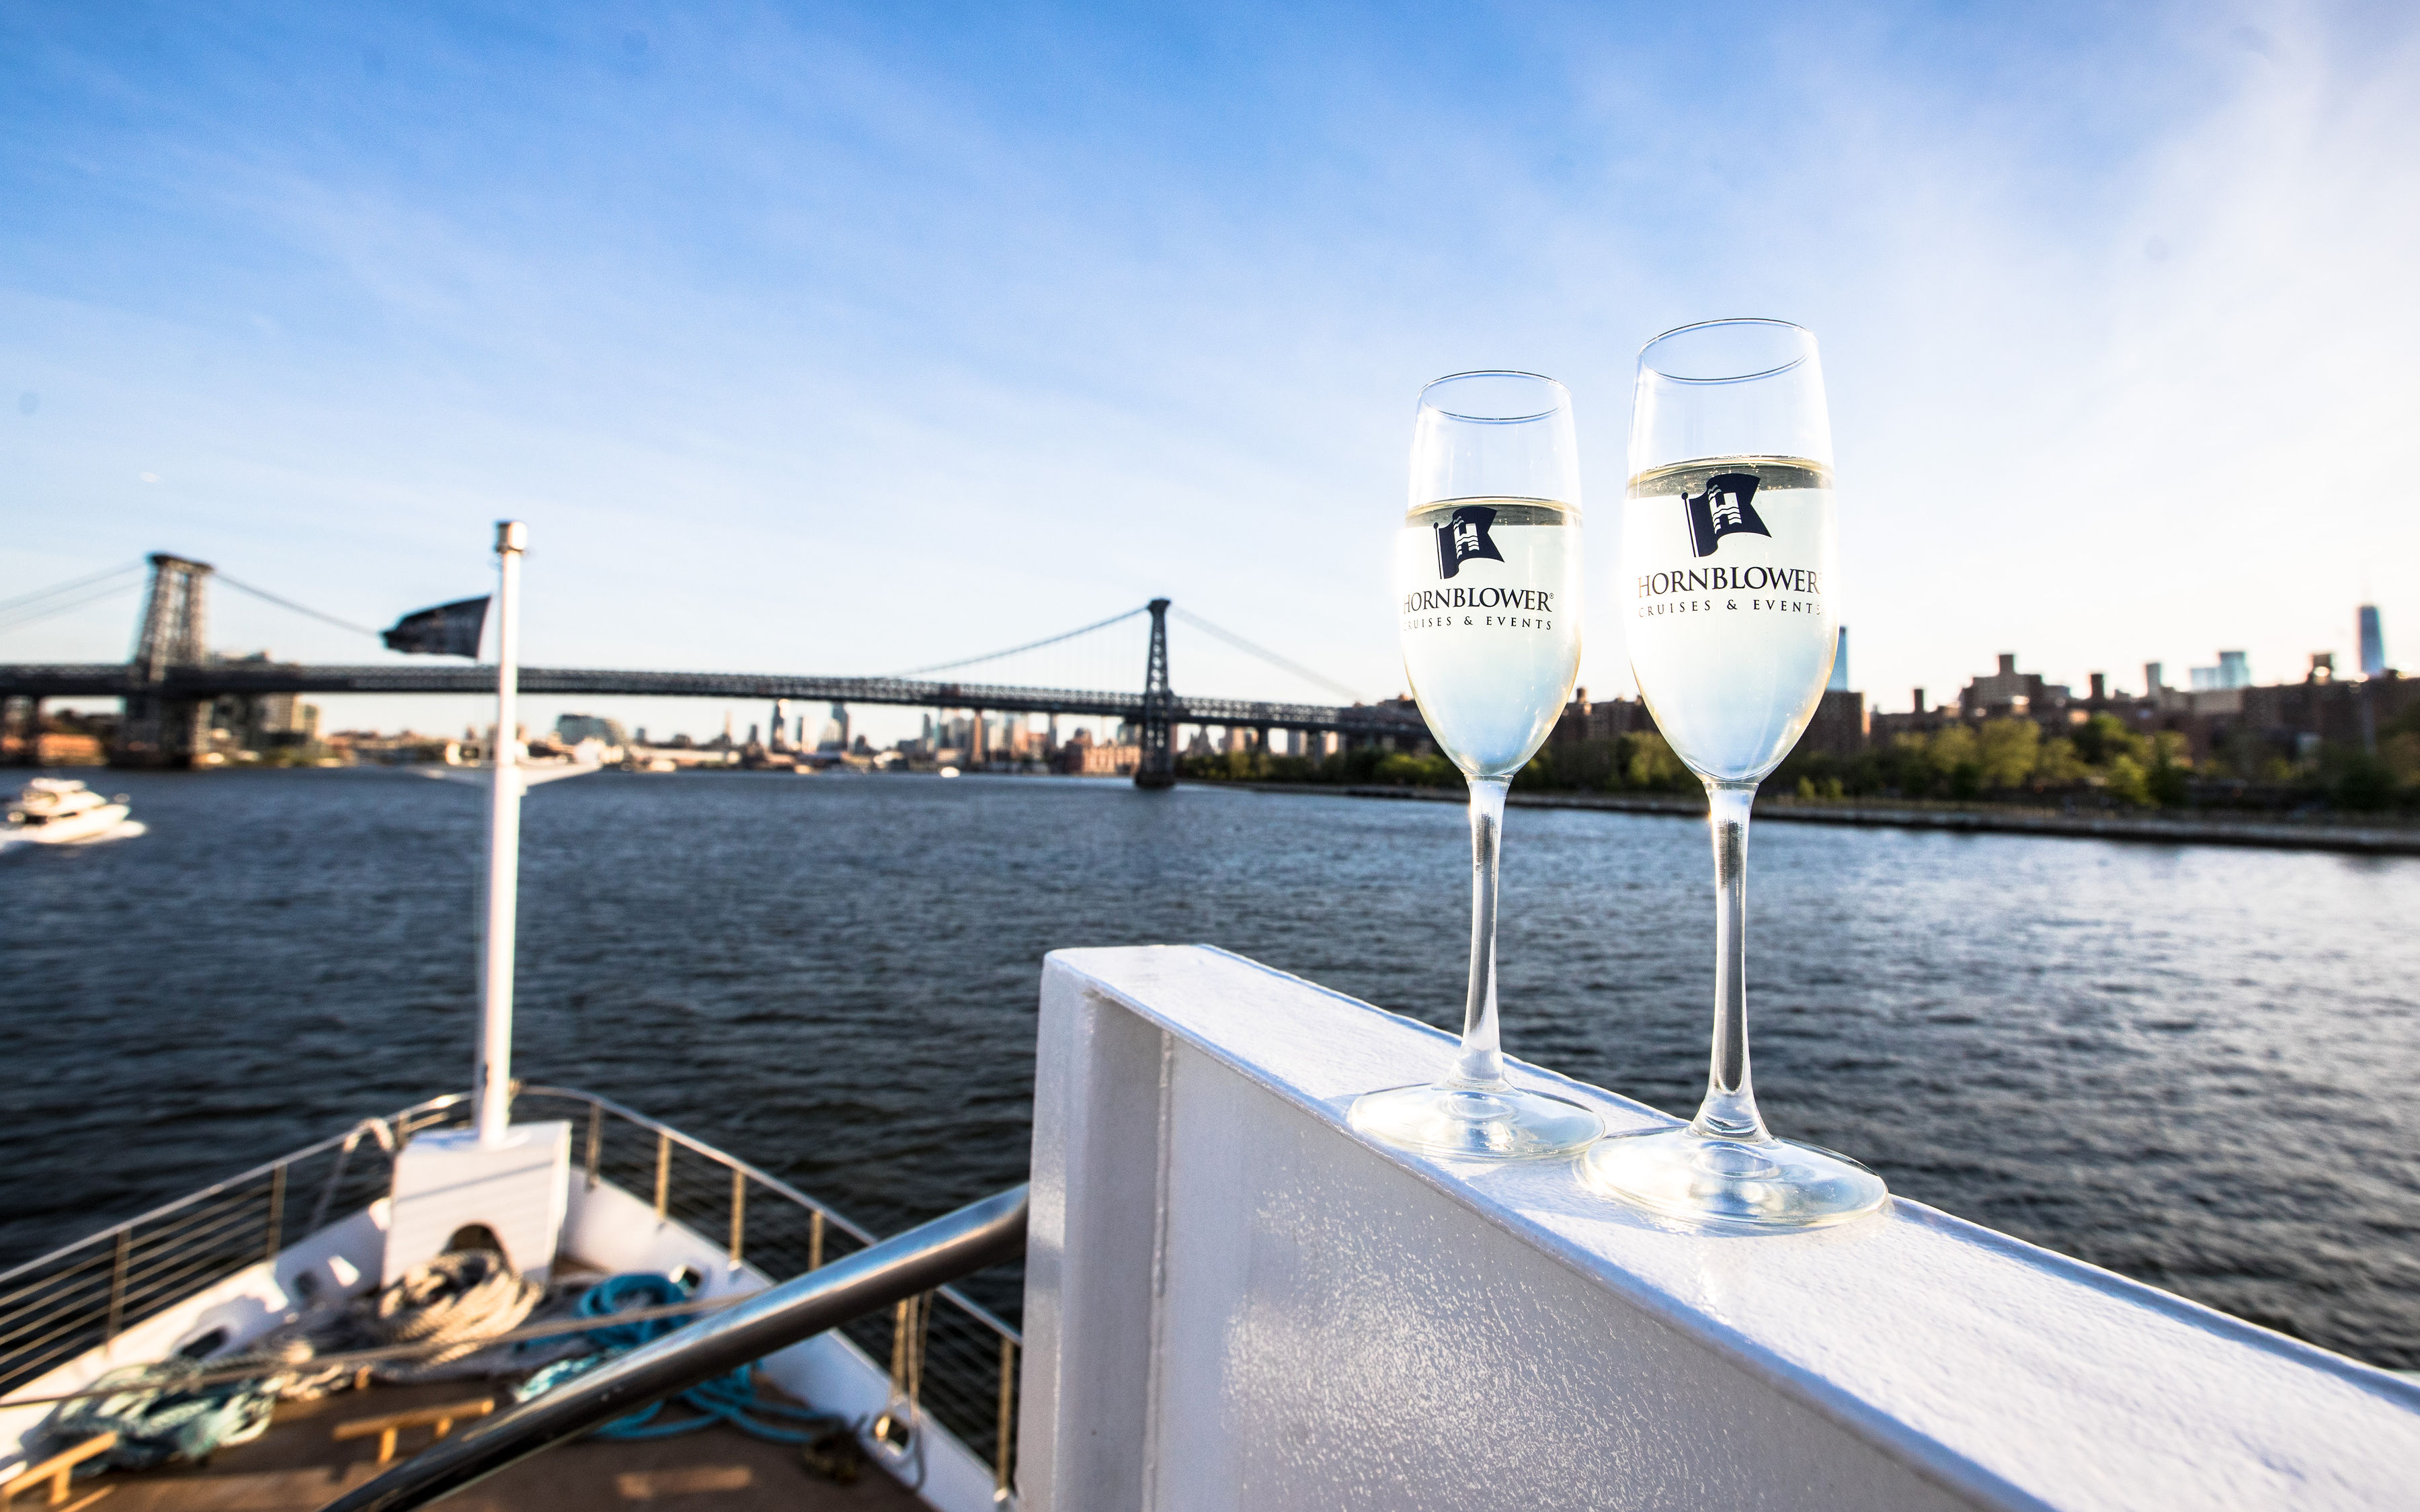 NYC Boat Cruises, Tours, Charters & Dining Cruises | Hornblower